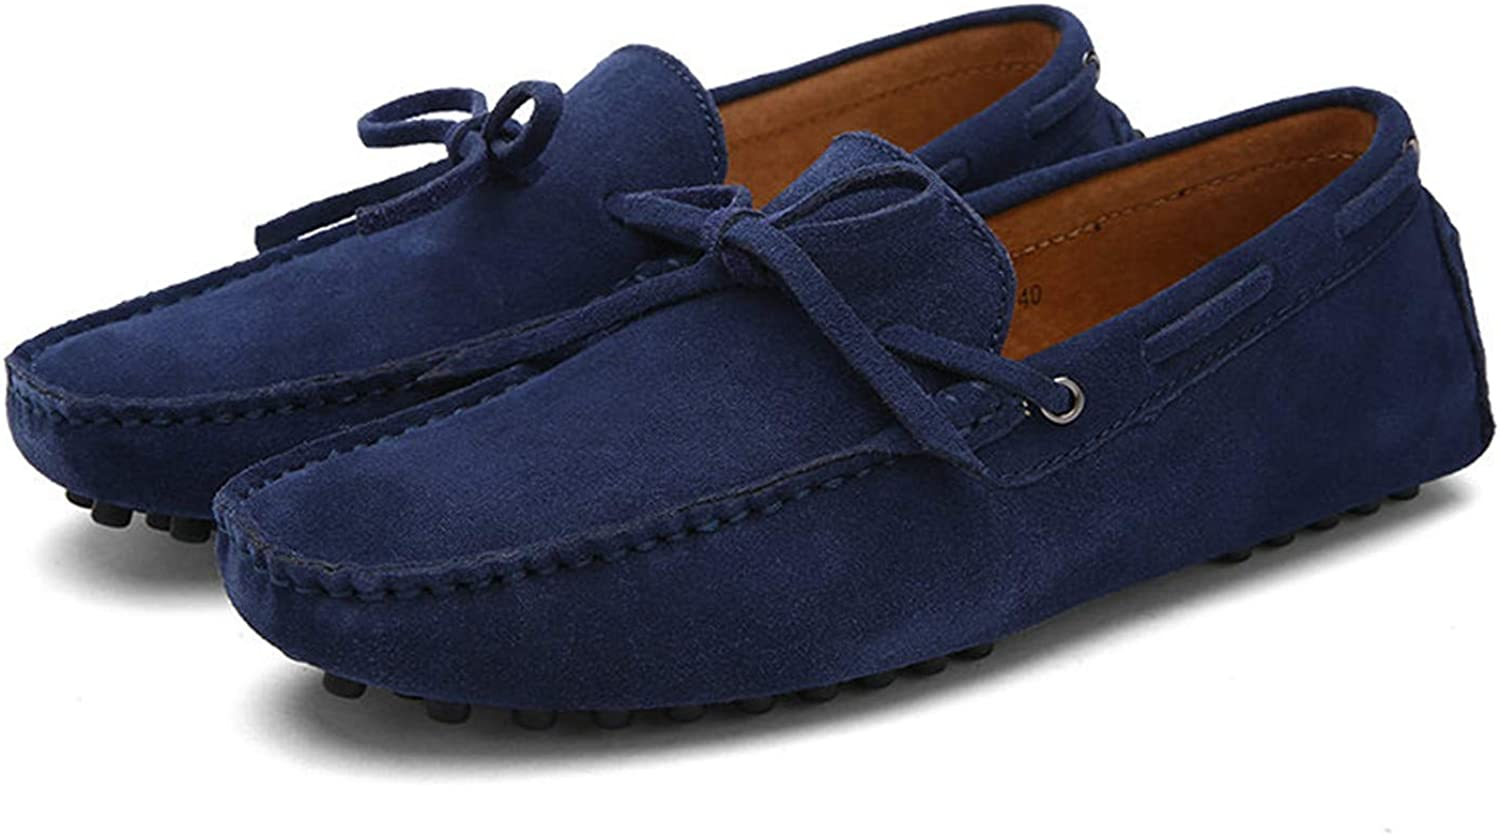 Light Brand Big Size Cow Suede Leather Men Flats New Men Casual shoes Men Loafers Moccasin Driving